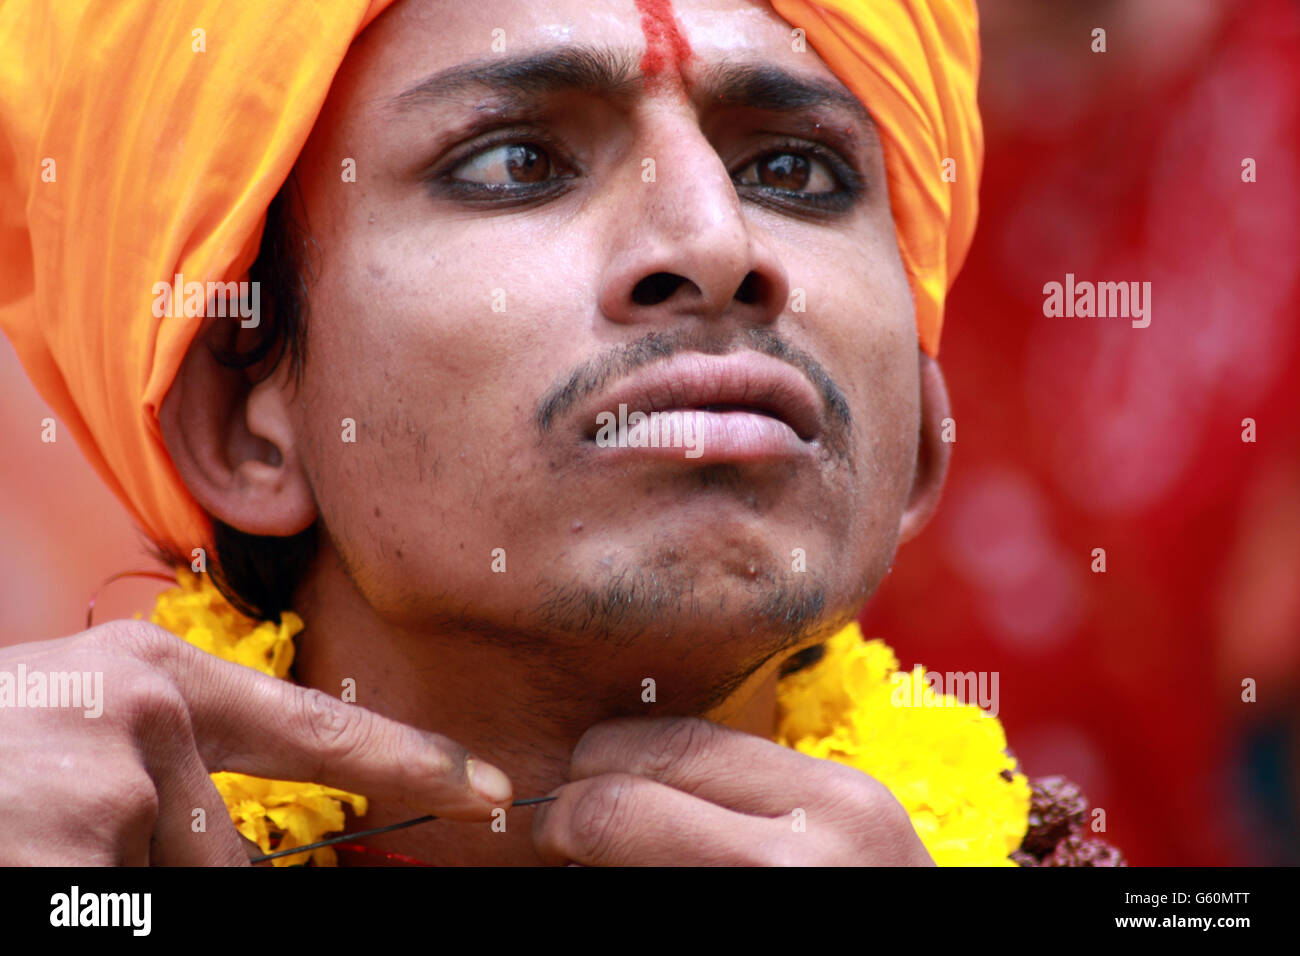 A closeup view of the painful expression of a tribal Indian man performing a bizarre ritual of passing a thin rod - Stock Image